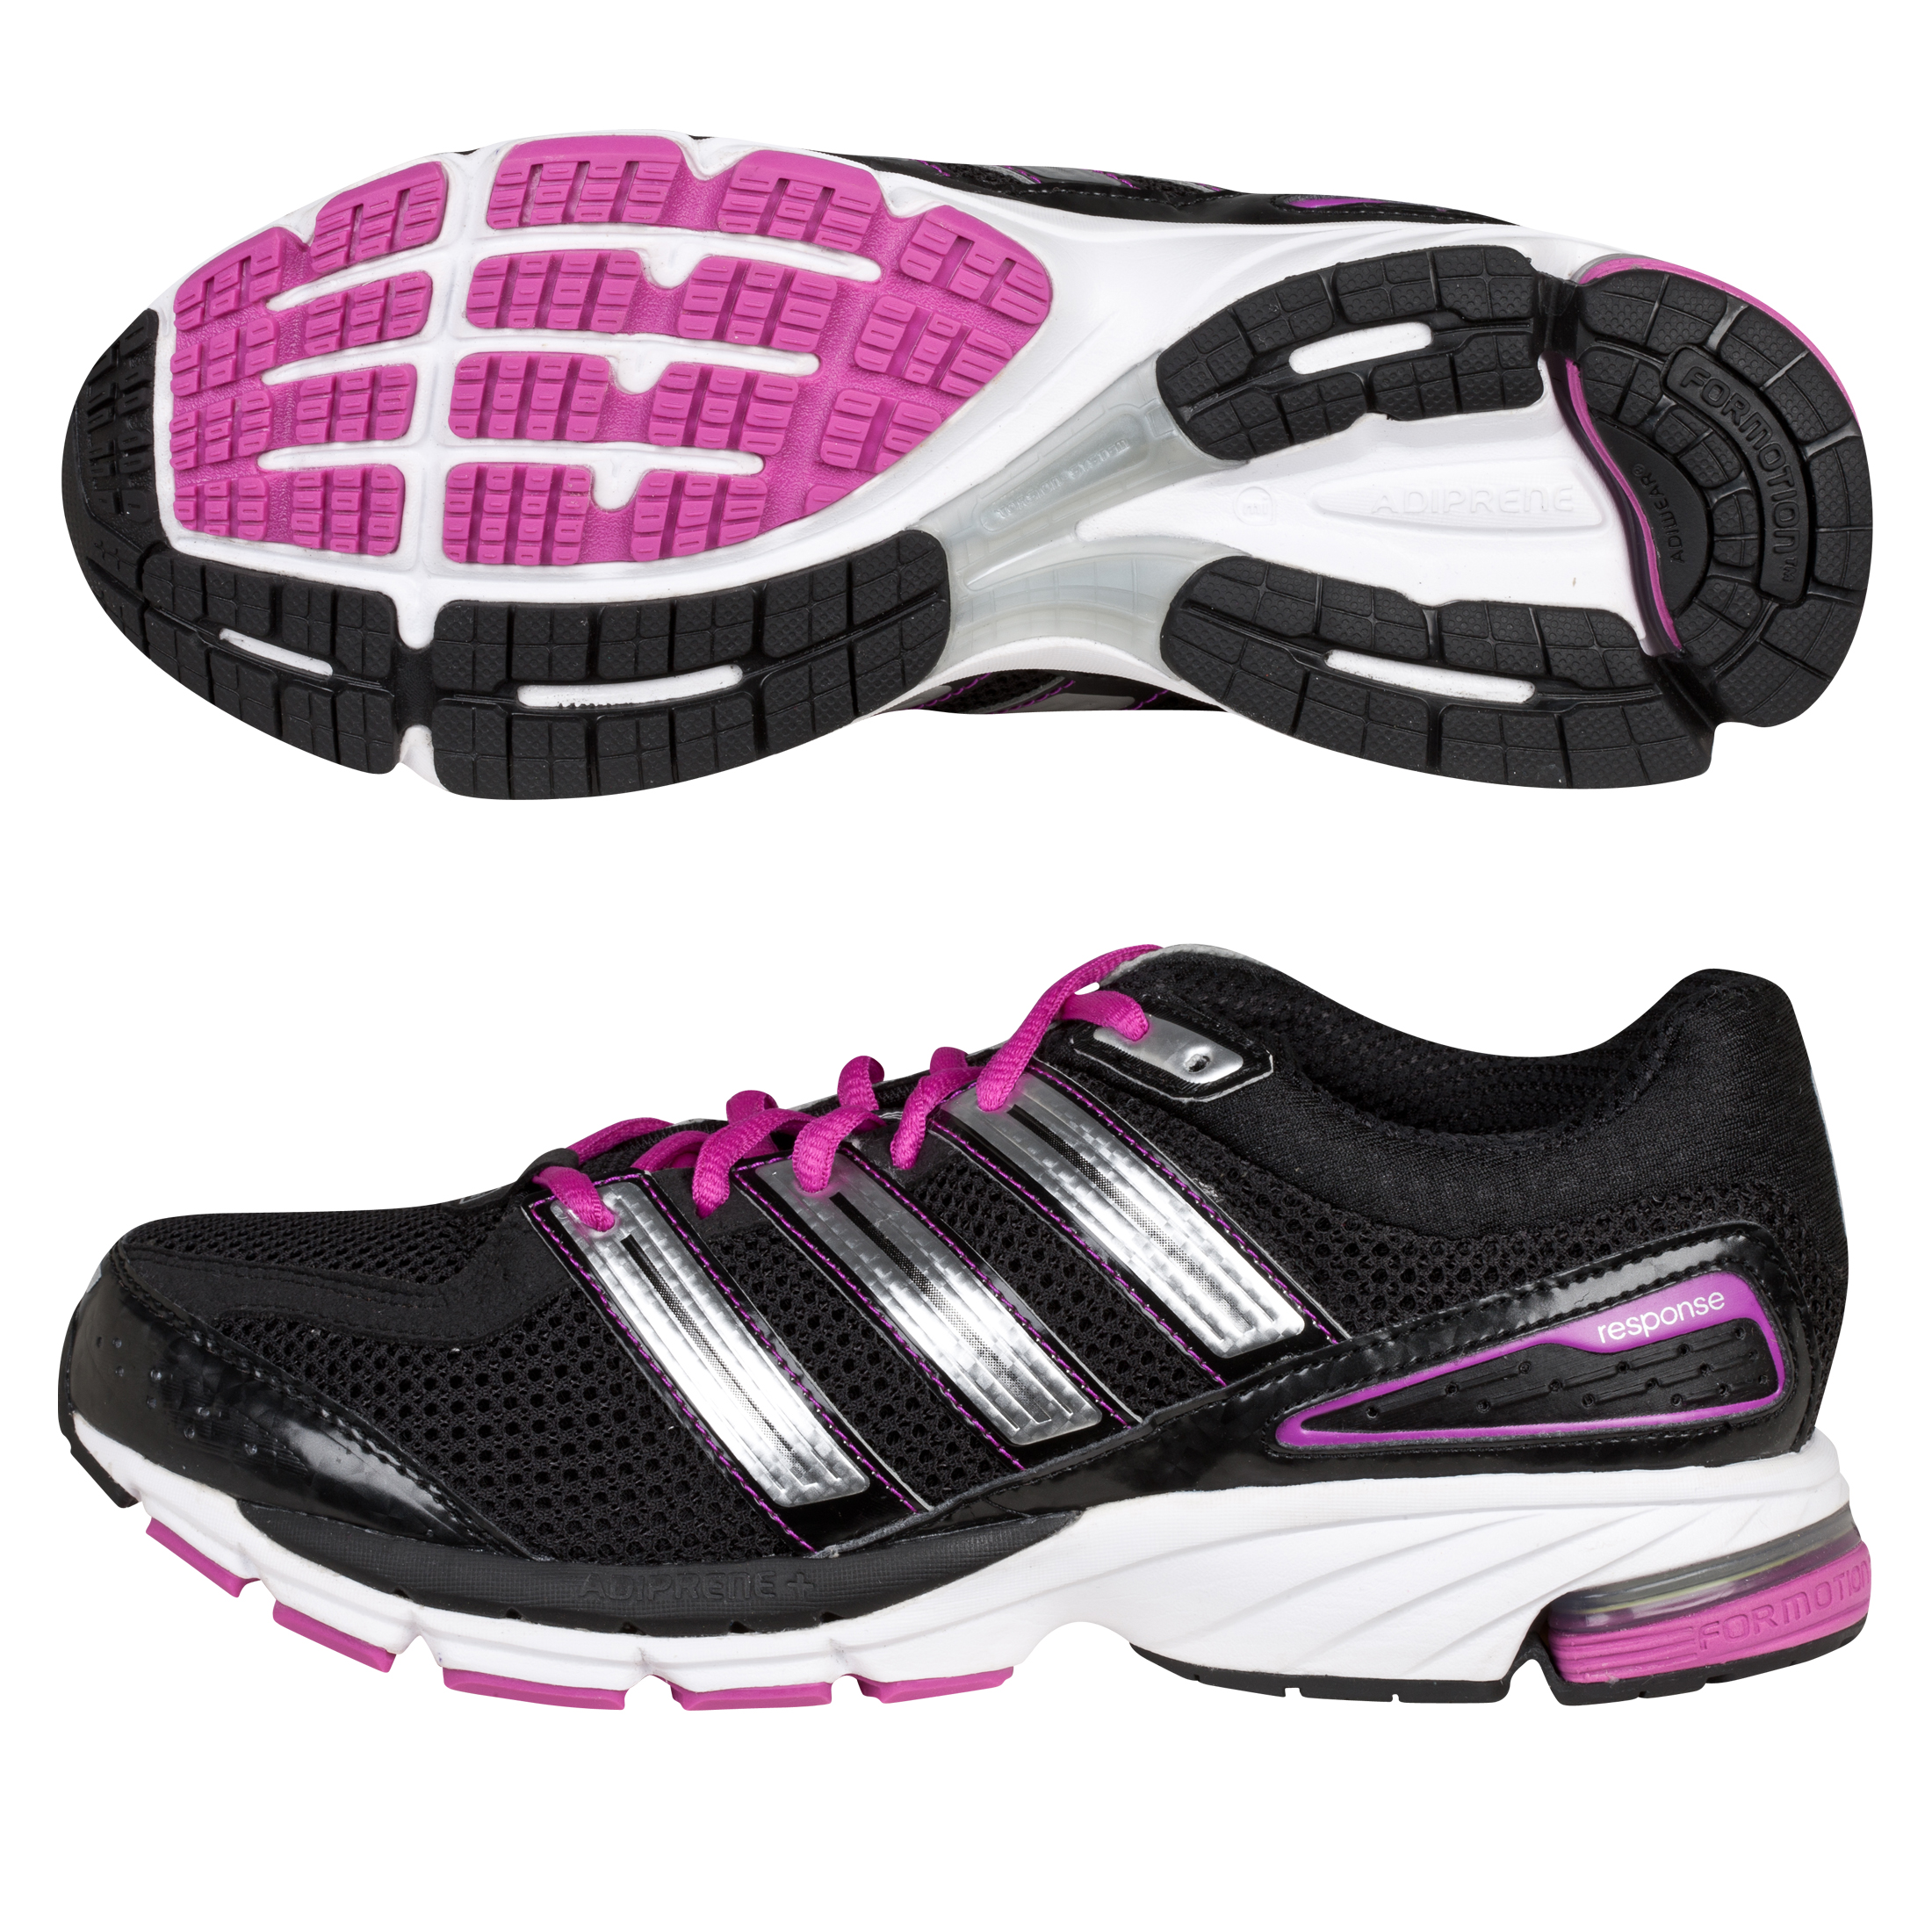 Adidas Response Cushion 21 - Womens